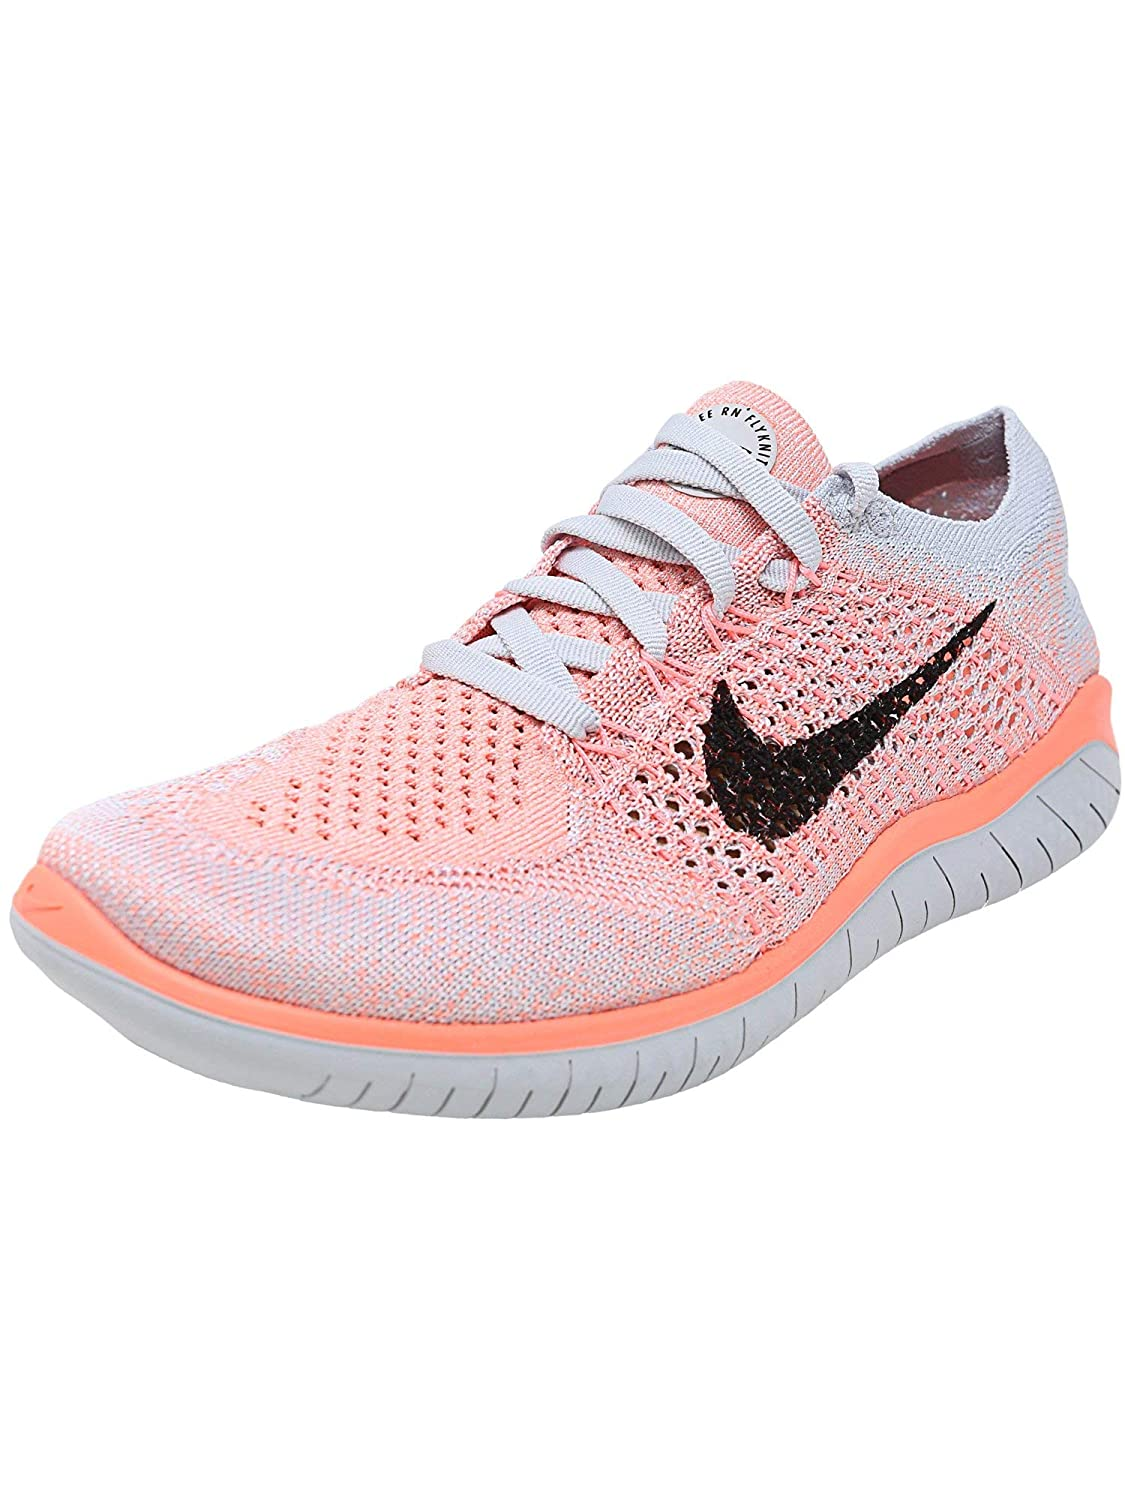 best loved faf76 ce4d3 Nike Womens Free Rn Flyknit 2018 Low Top Lace Up Running, Orange, Size 7.5